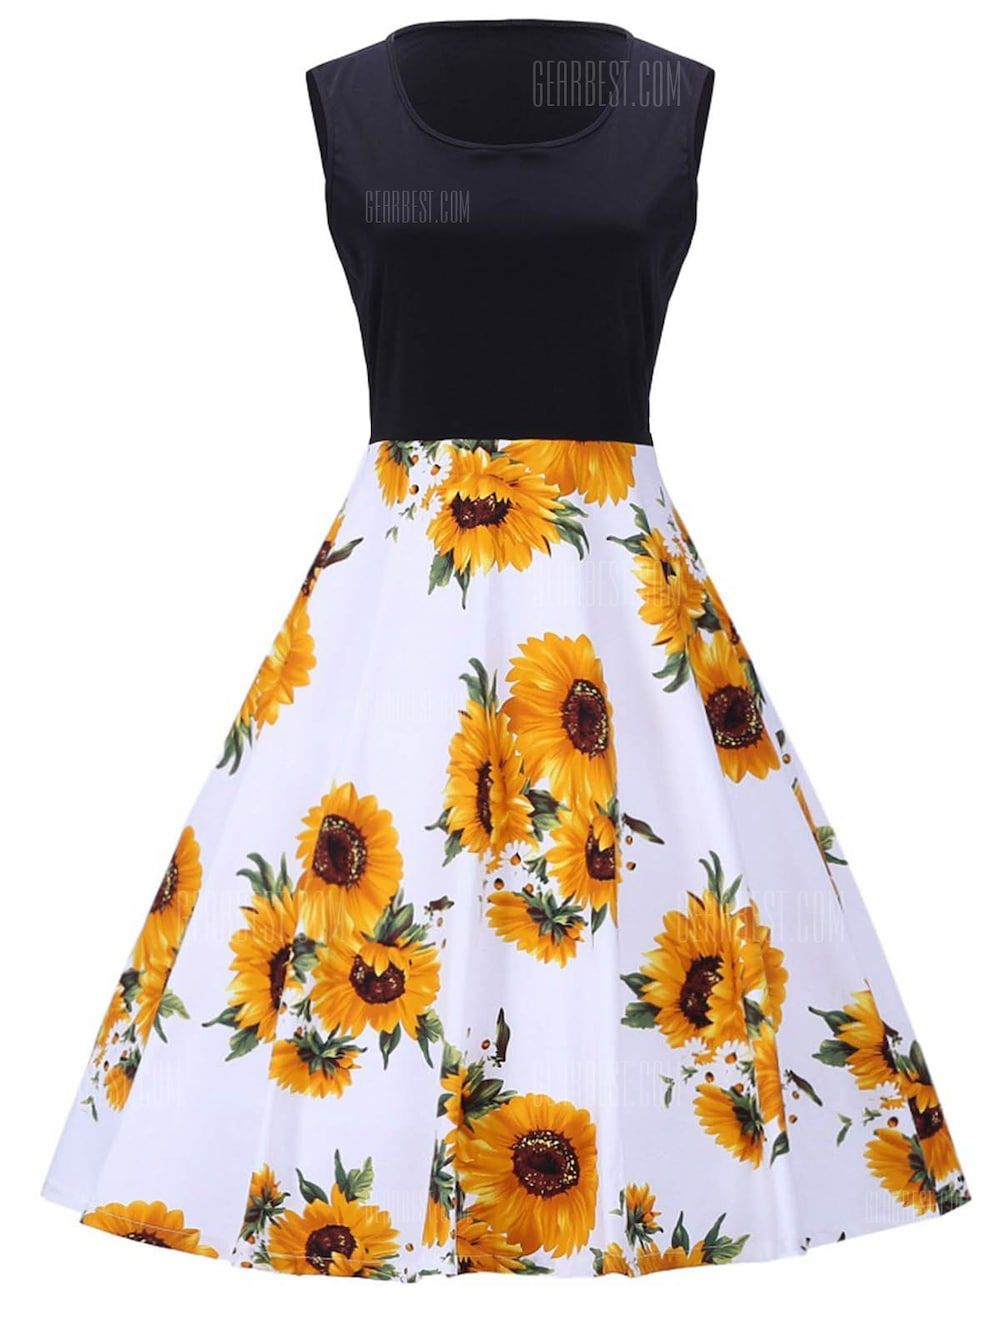 Only 34 15 Buy Sunflower Print Vintage Sleeveless Dress At Gearbest Store With Free Shipping Fashion Pretty Dresses Sunflower Dress [ 1330 x 1000 Pixel ]